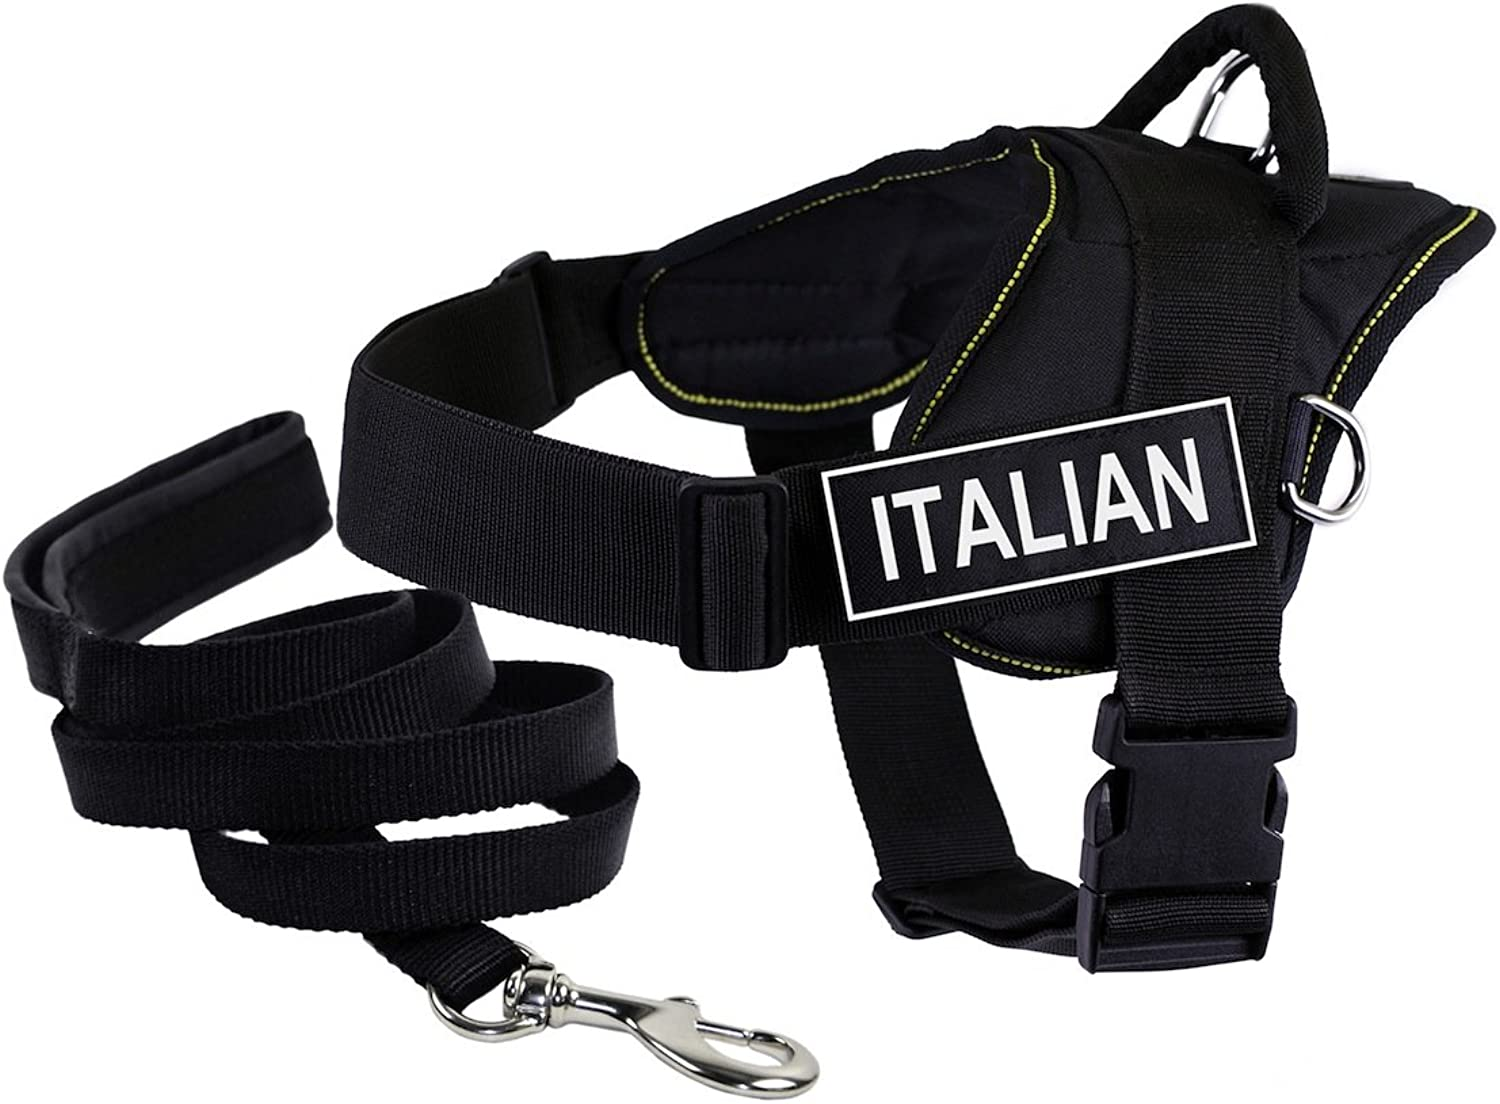 Dean & Tyler's DT Fun ITALIAN Harness, XXSmall, with 6 ft Padded Puppy Leash.